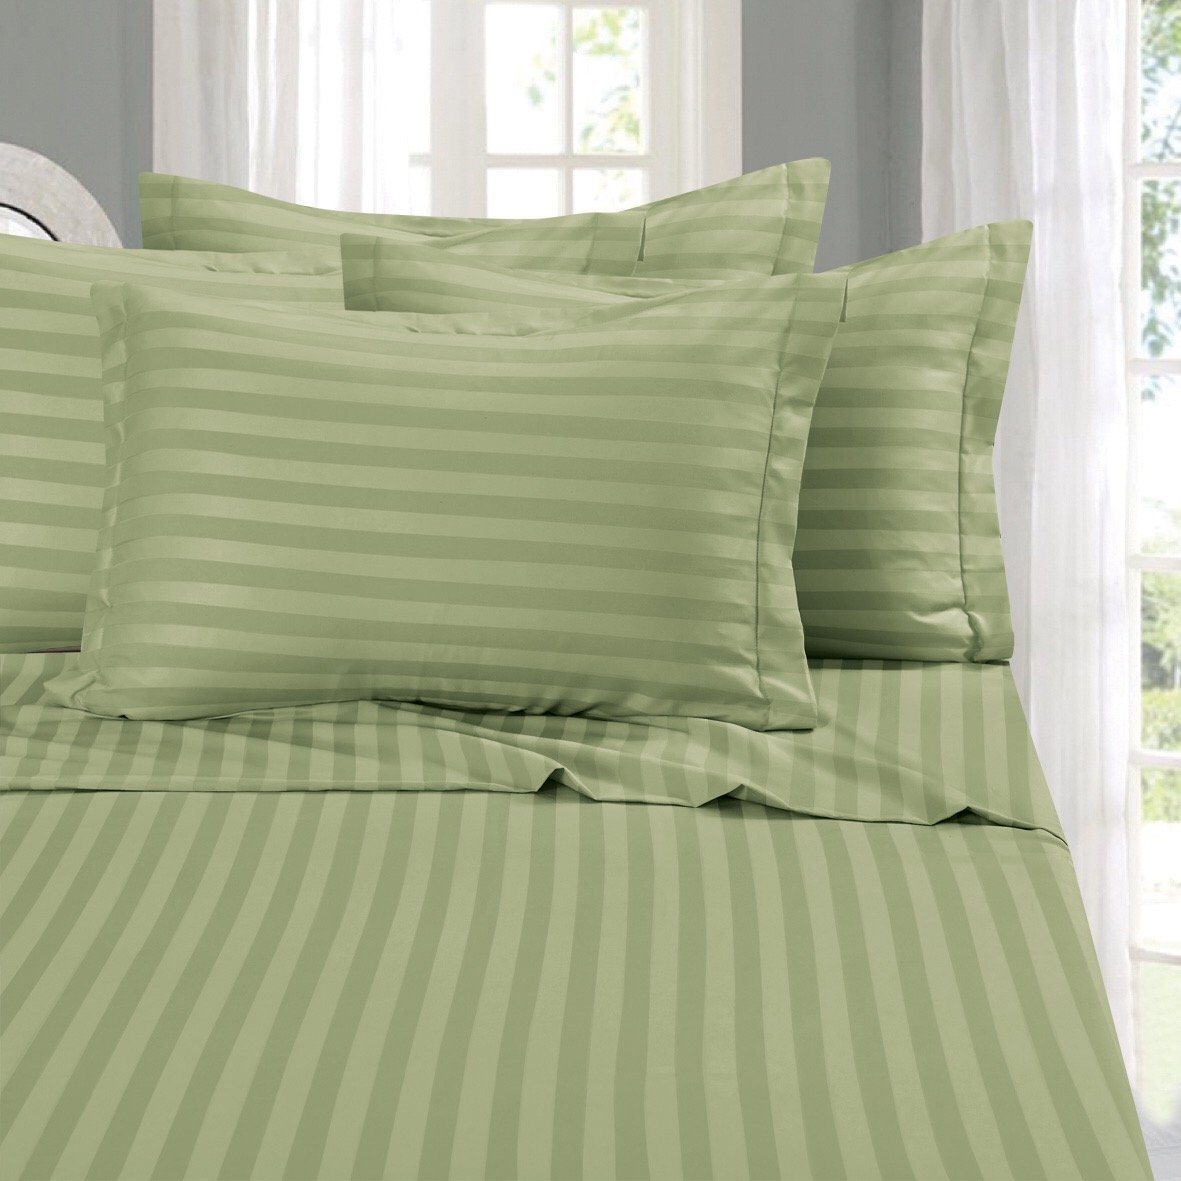 Elegant Comfort Super Silky Soft 6 Piece STRIPE Bed Sheet Set, Queen Green